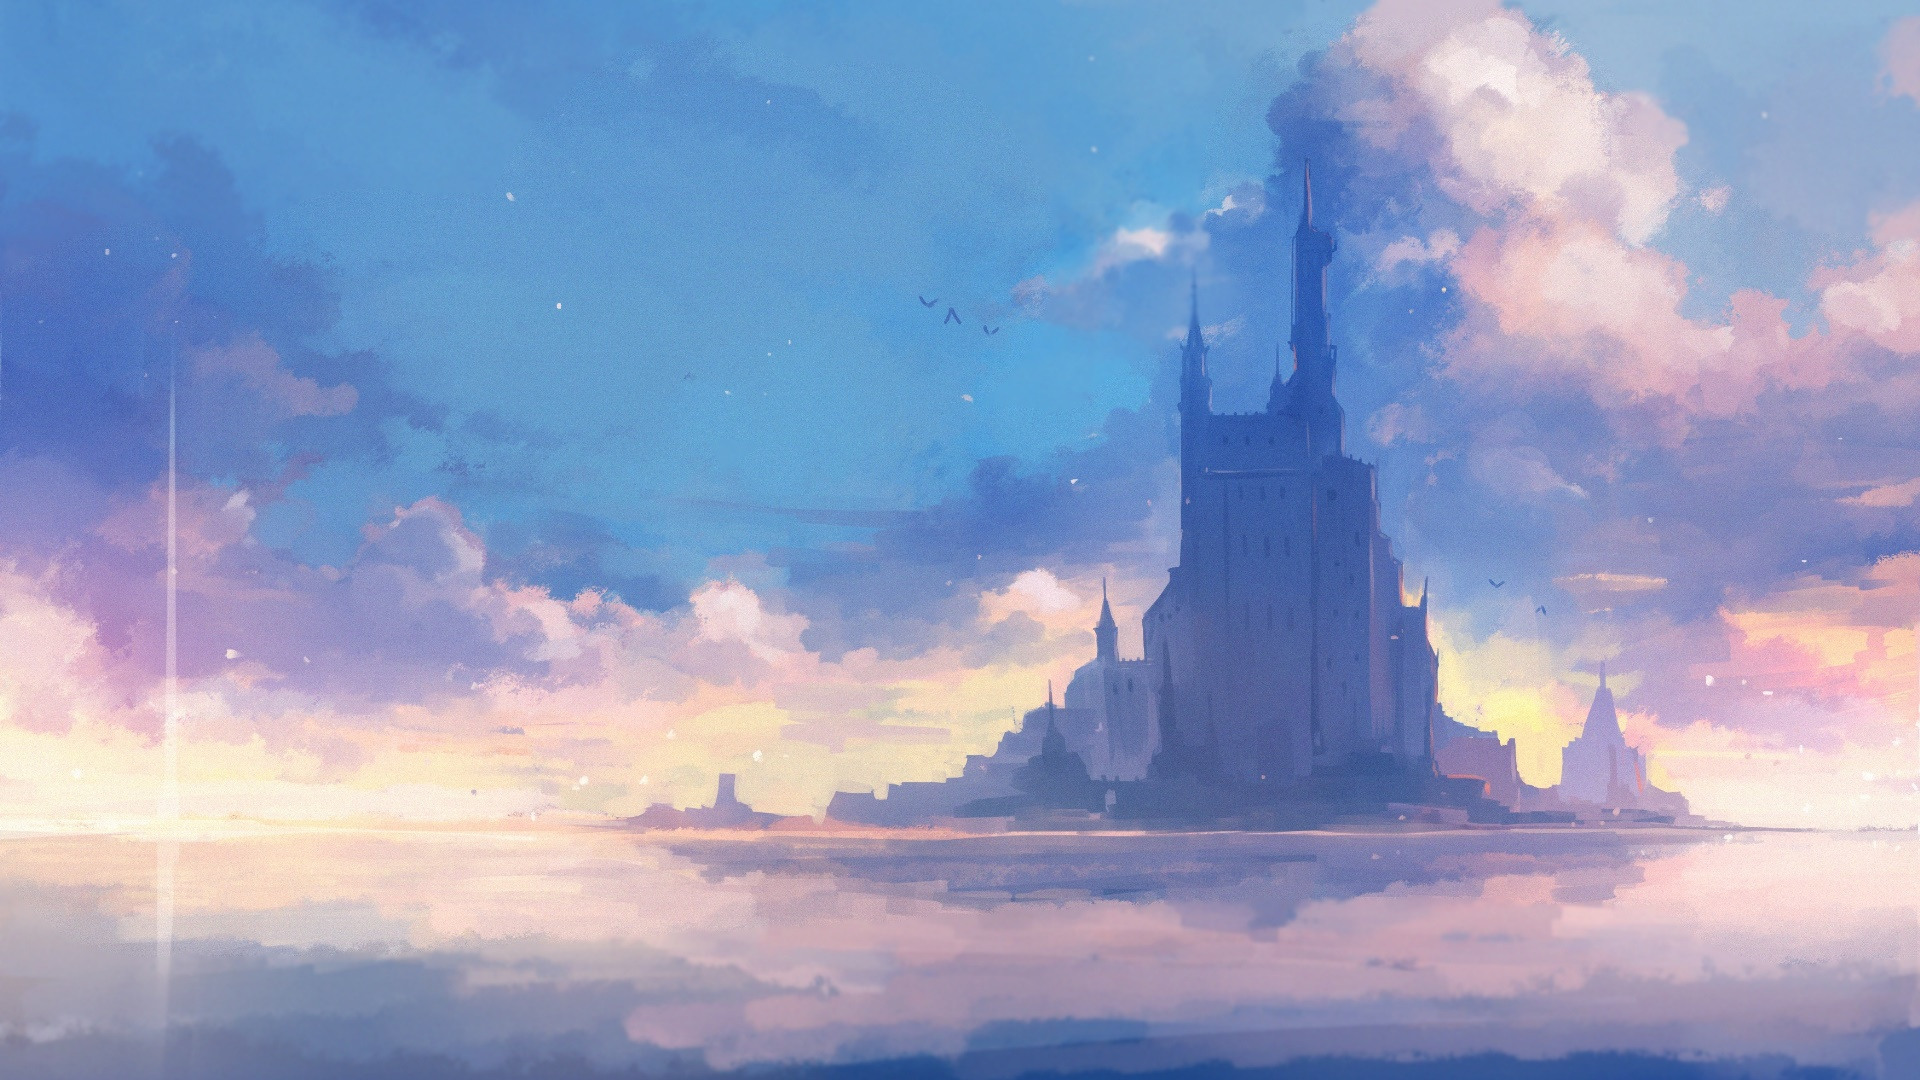 Floating fantasy castle on the middle of the sea wallpaper